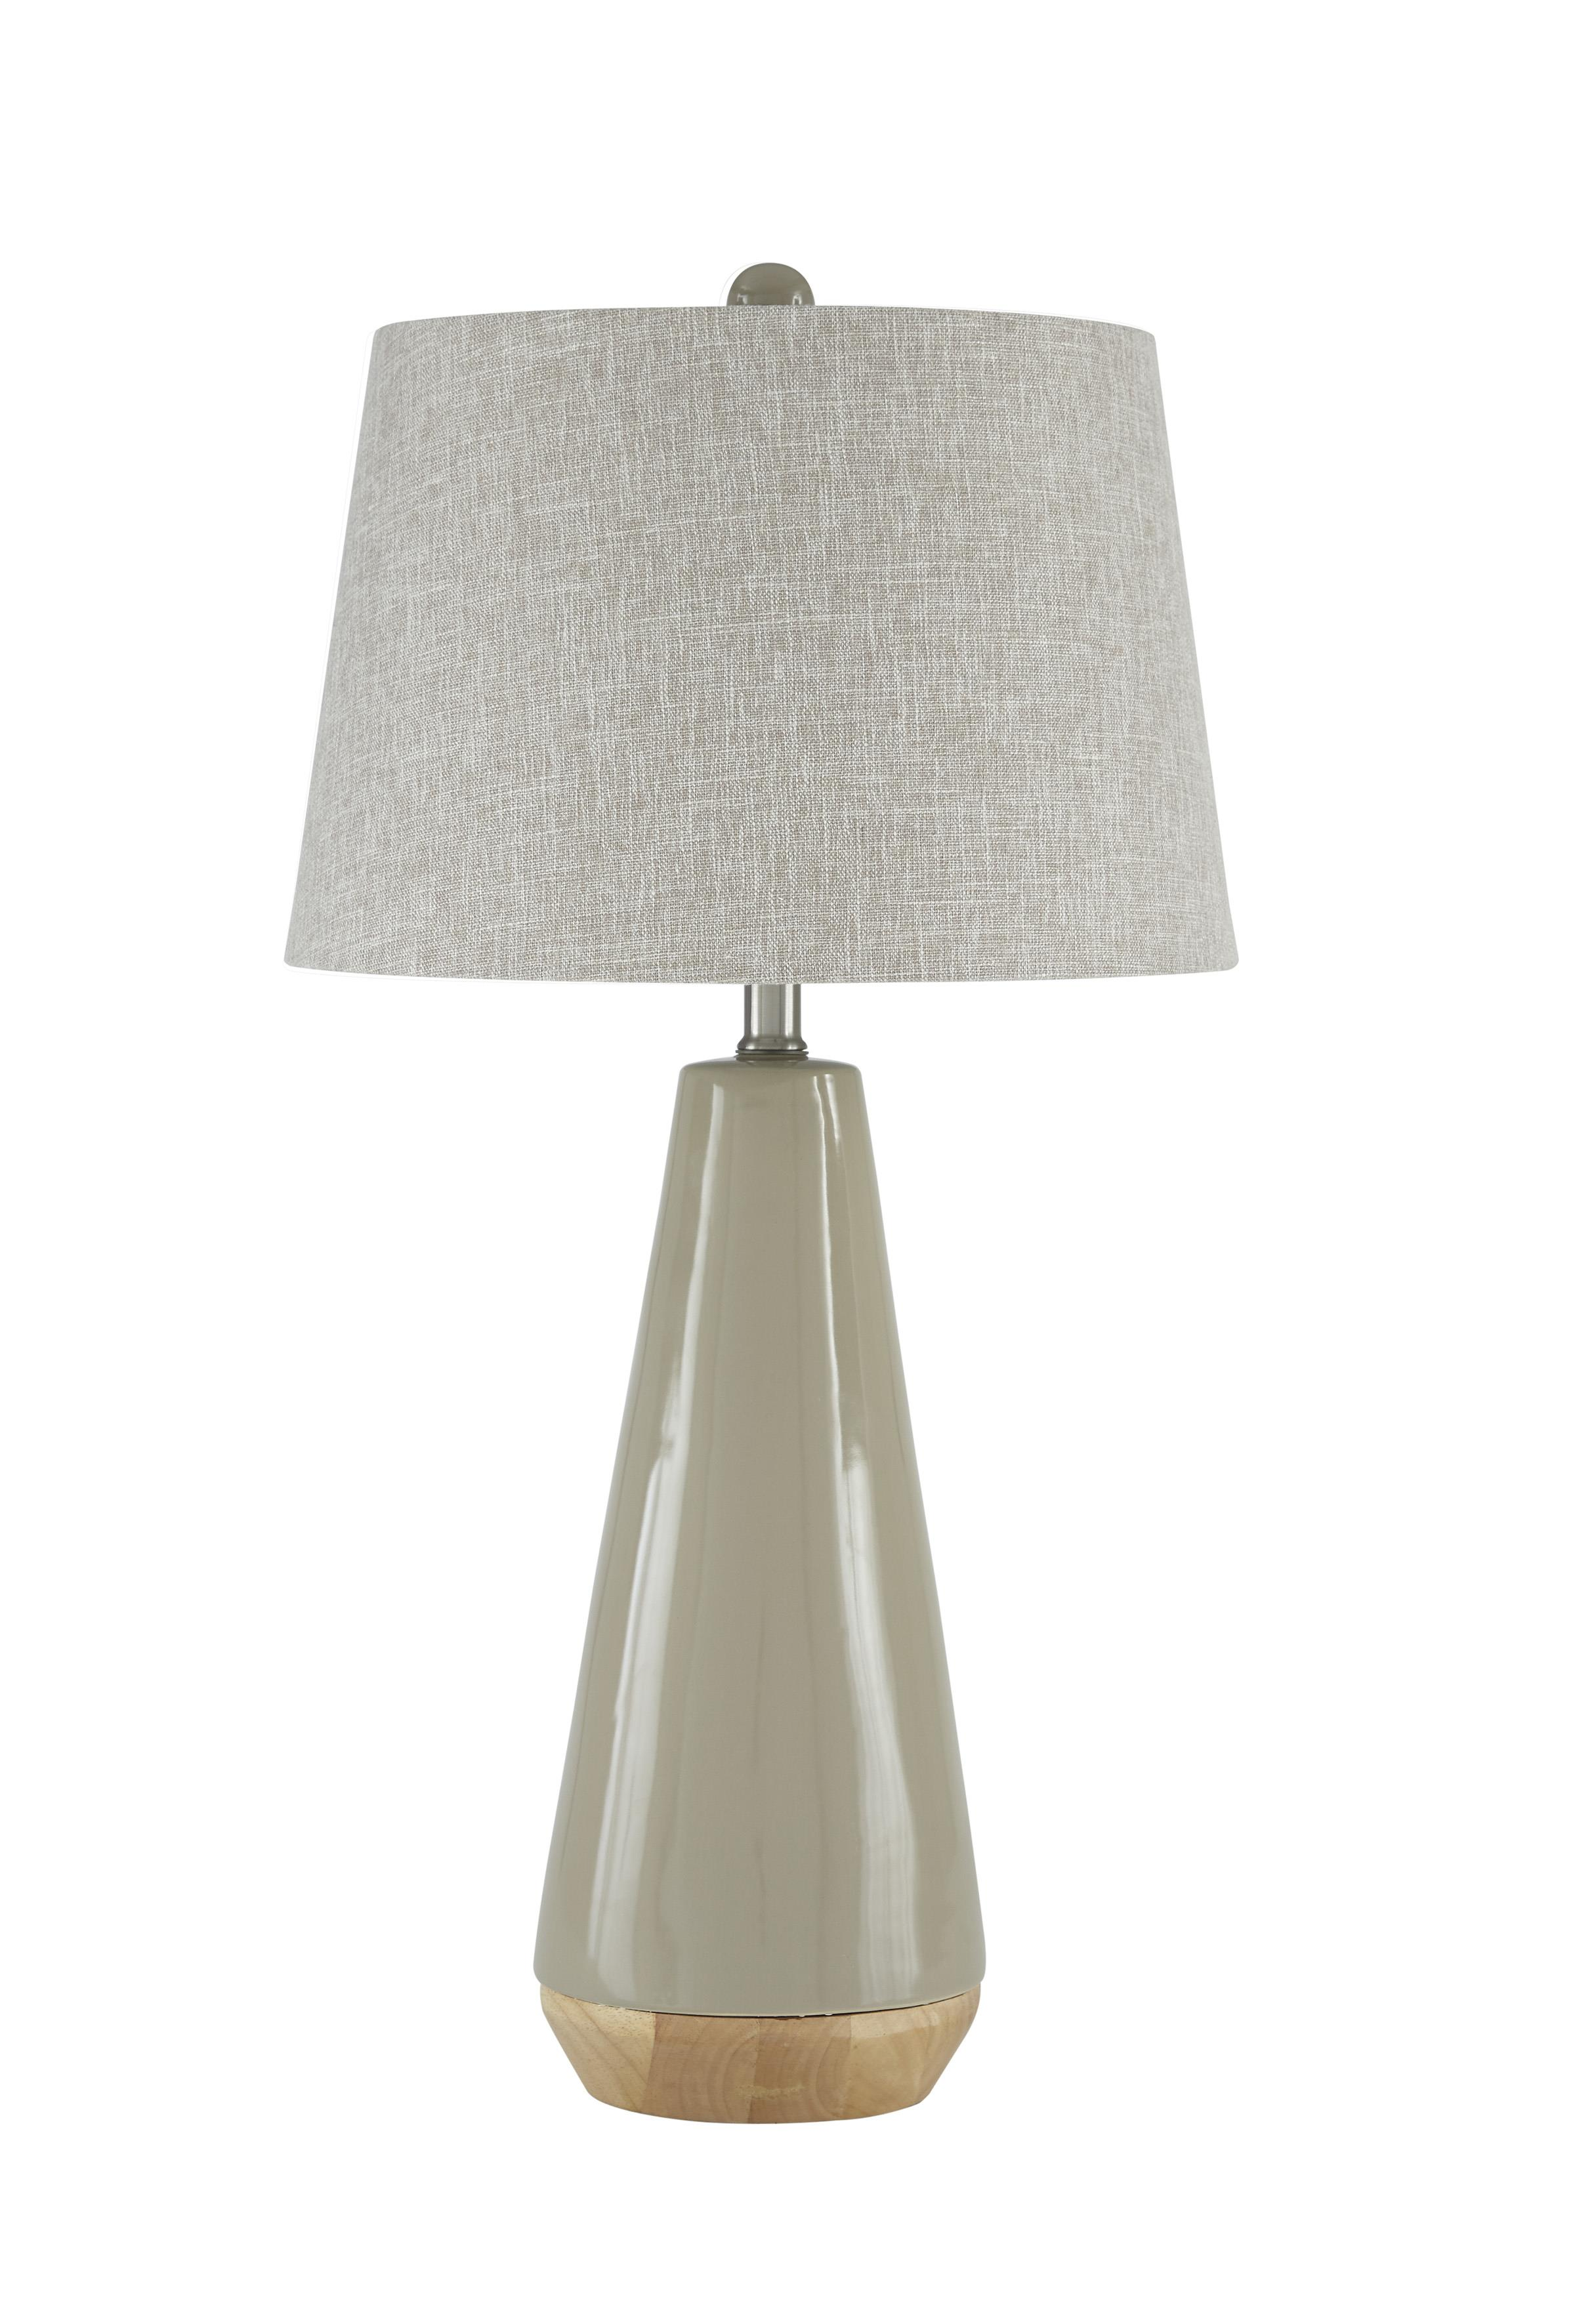 Lamps - Contemporary Sheray Taupe Ceramic Table Lamp by Signature Design at Fisher Home Furnishings